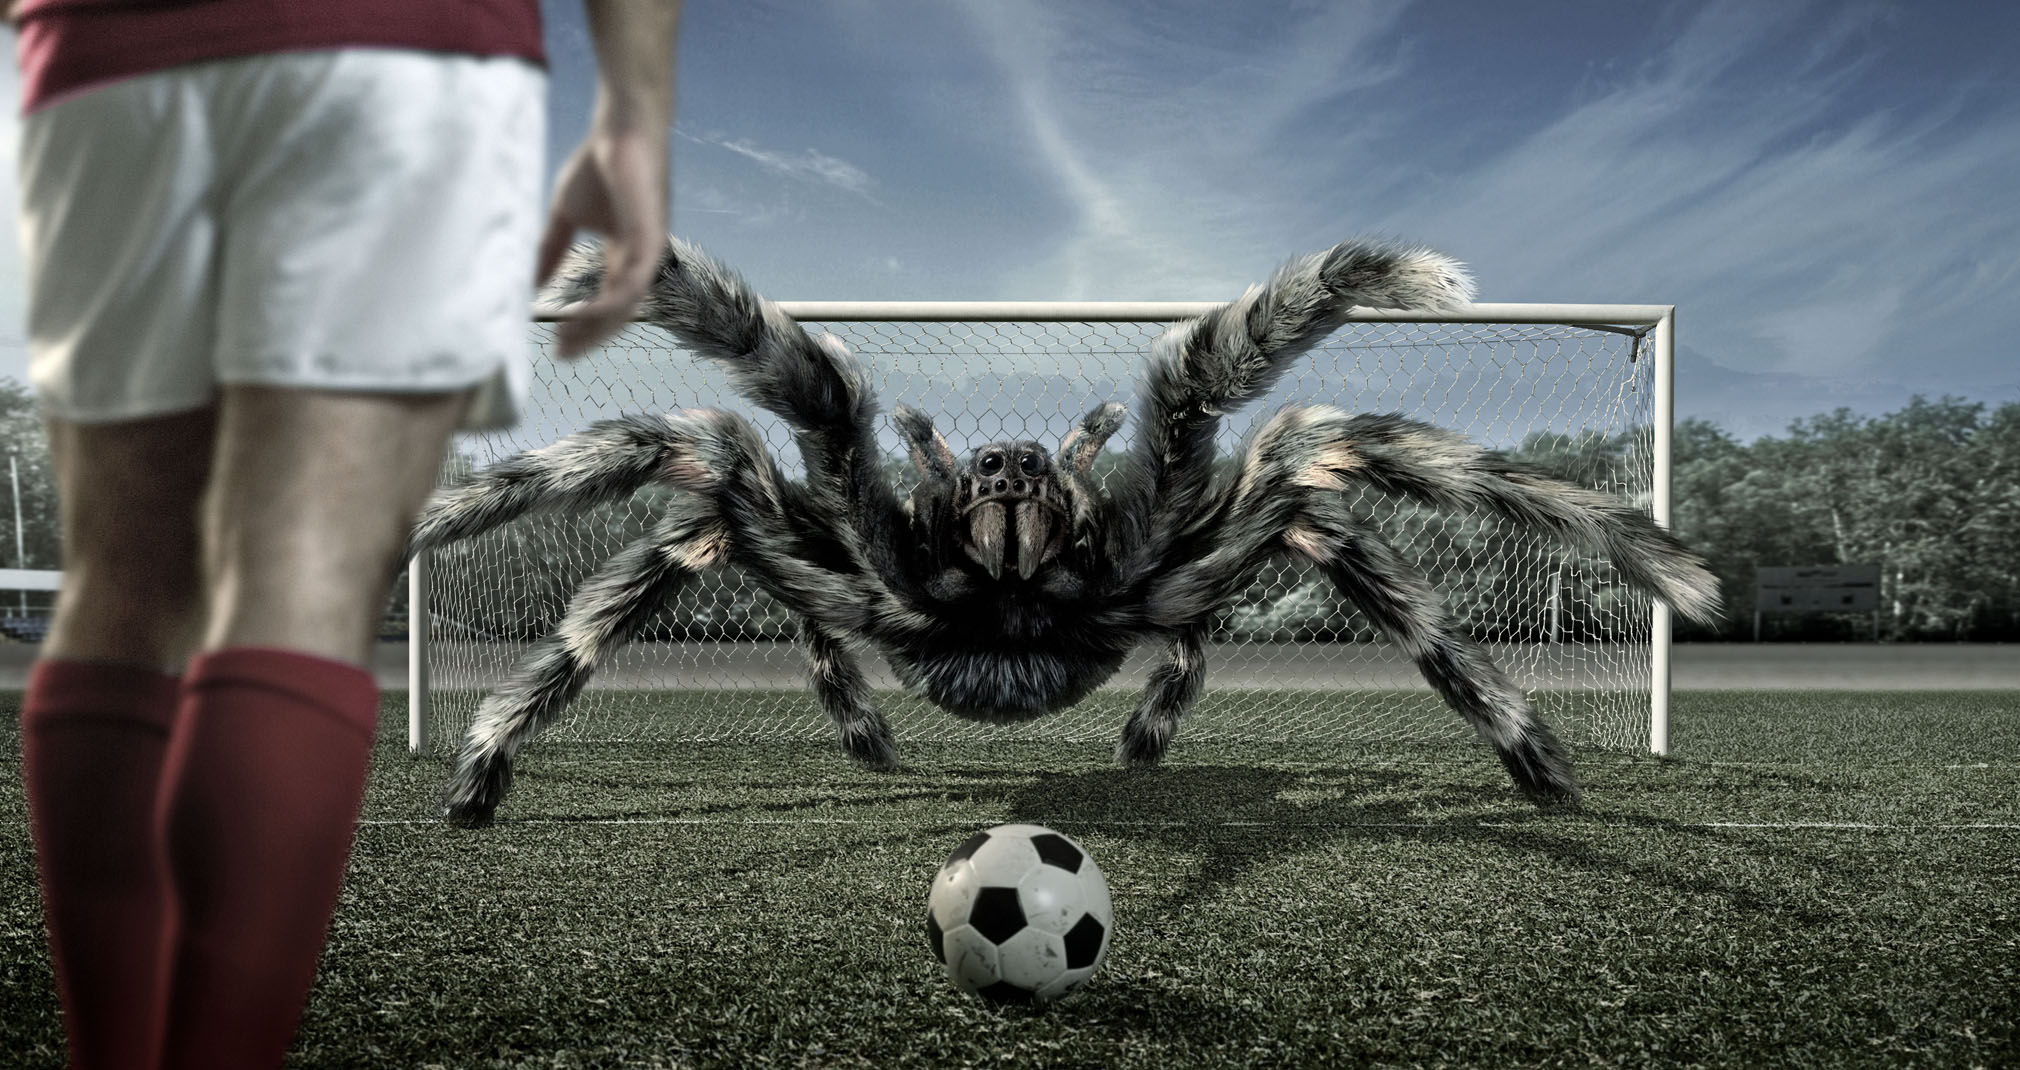 846-giant-spider-goal-keeper-hd-wallpape